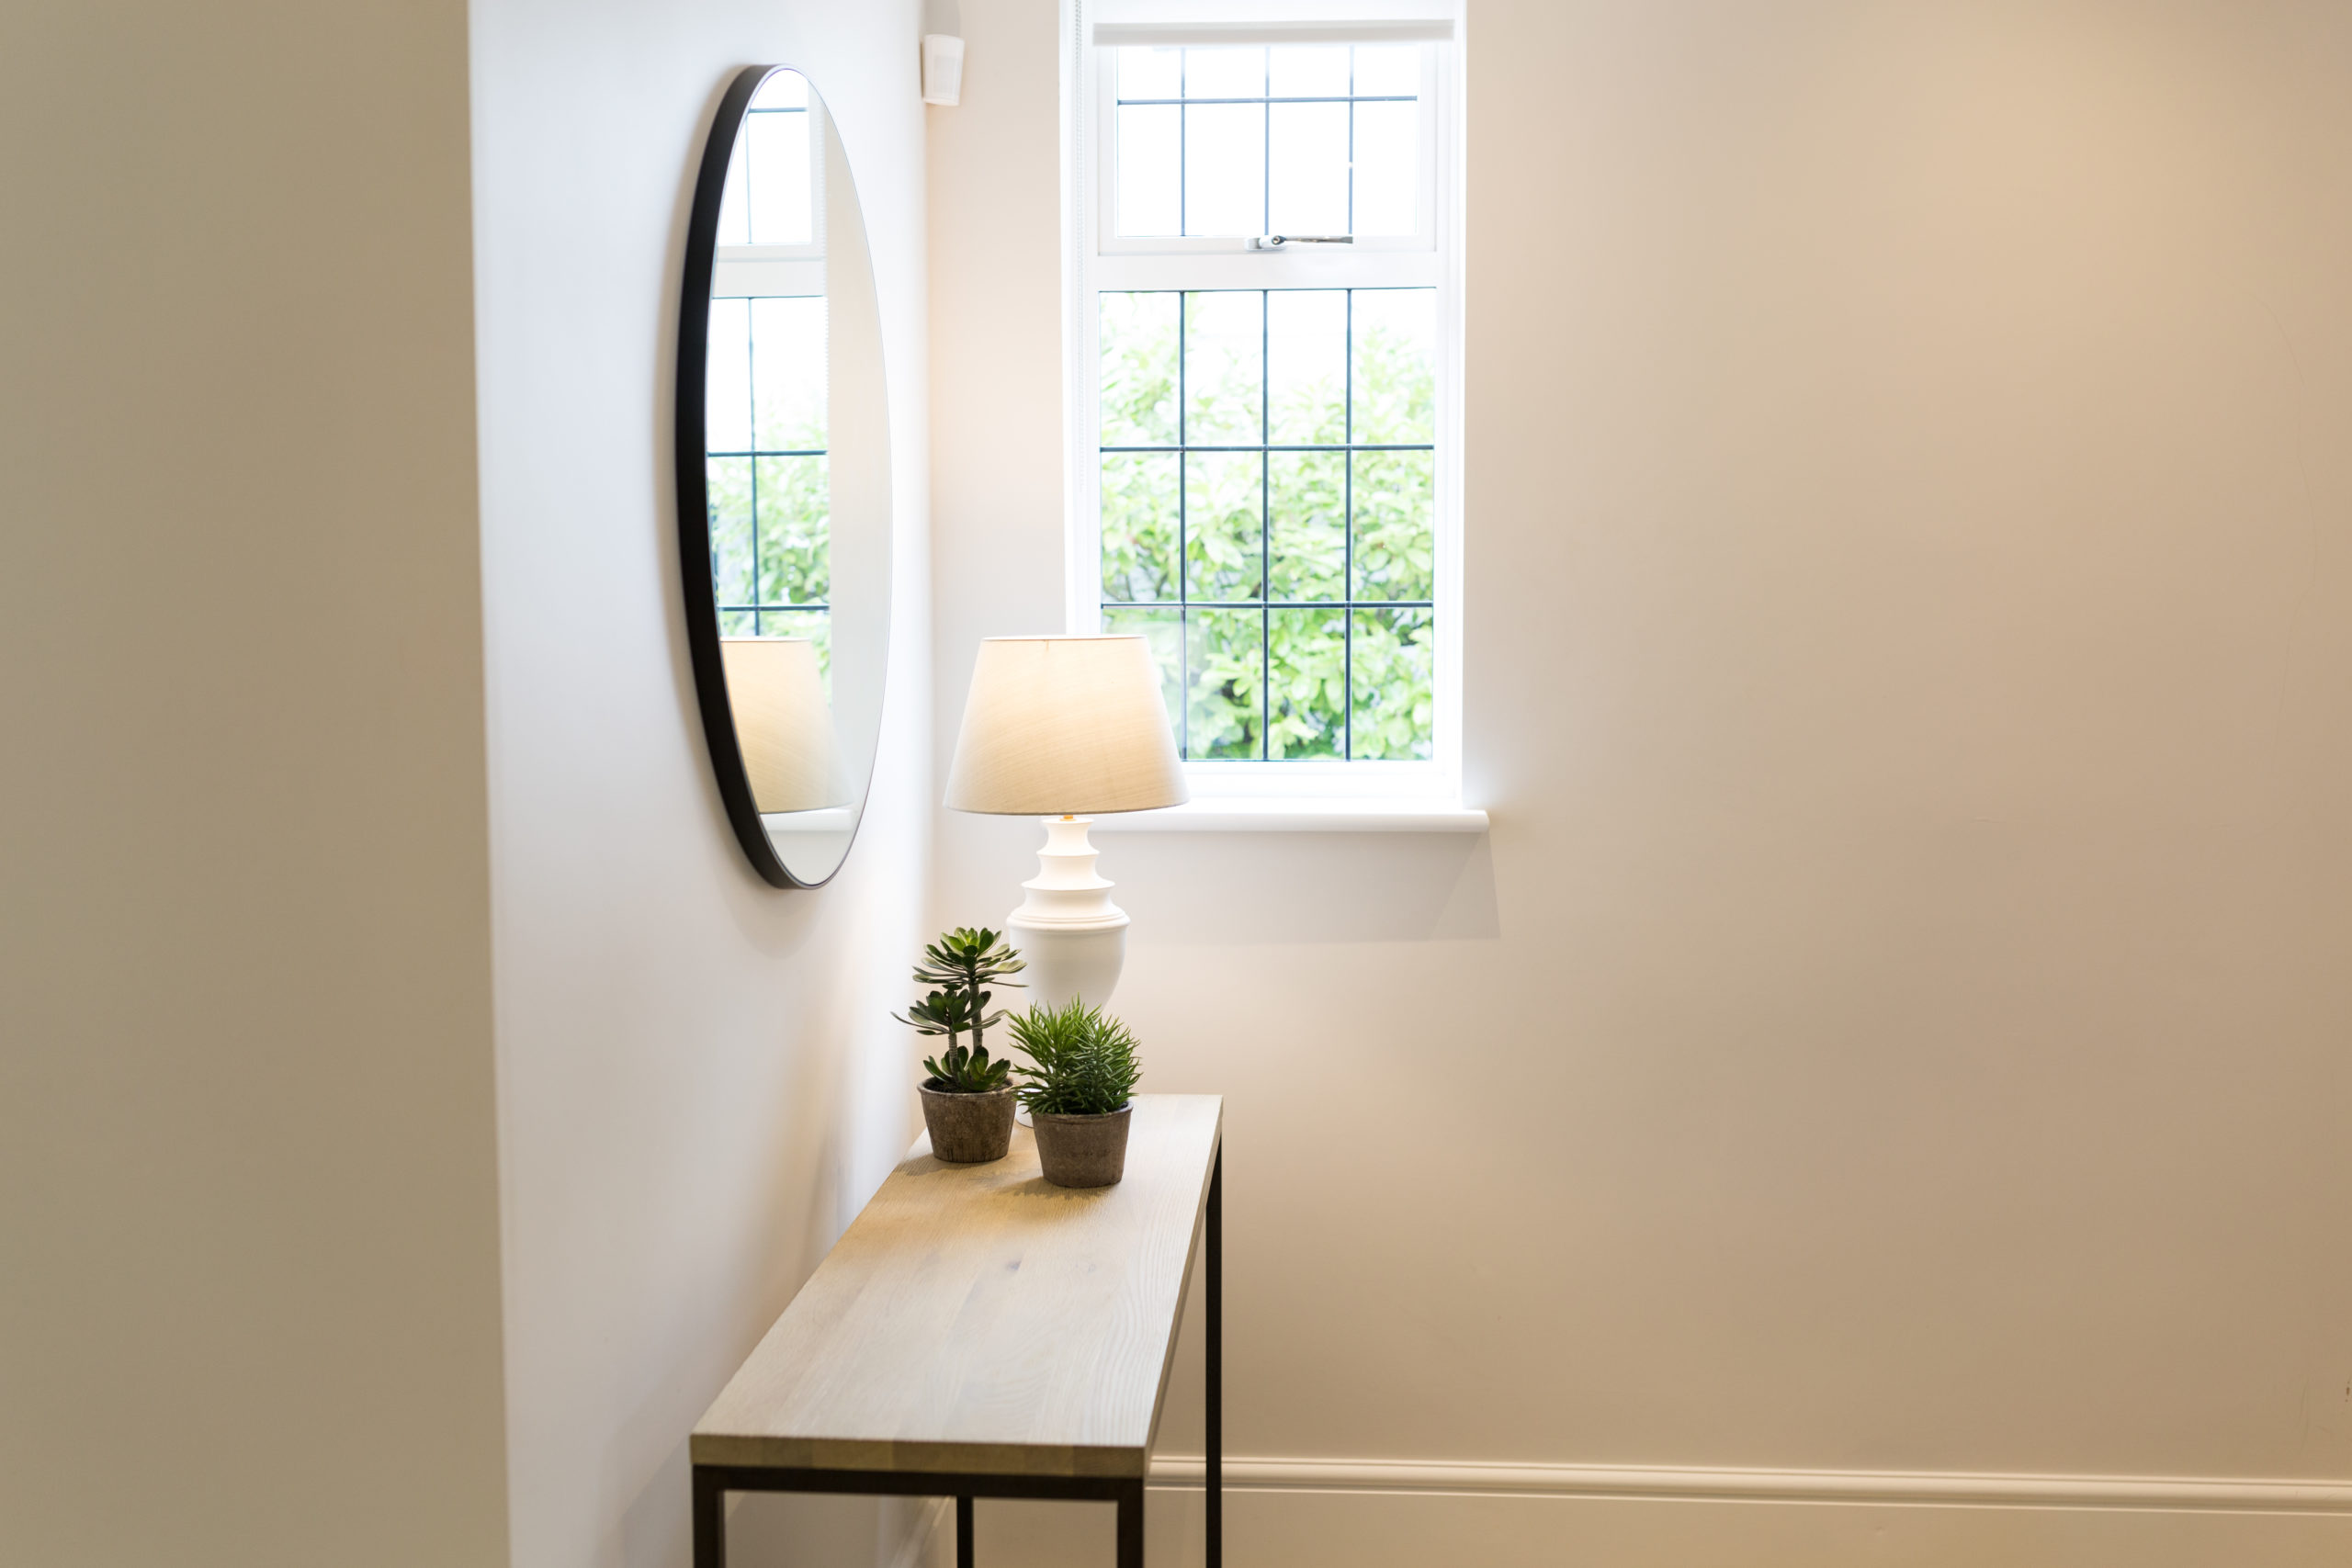 hall table and mirror at Kent interiors photoshoot for London interior designer IG interiors